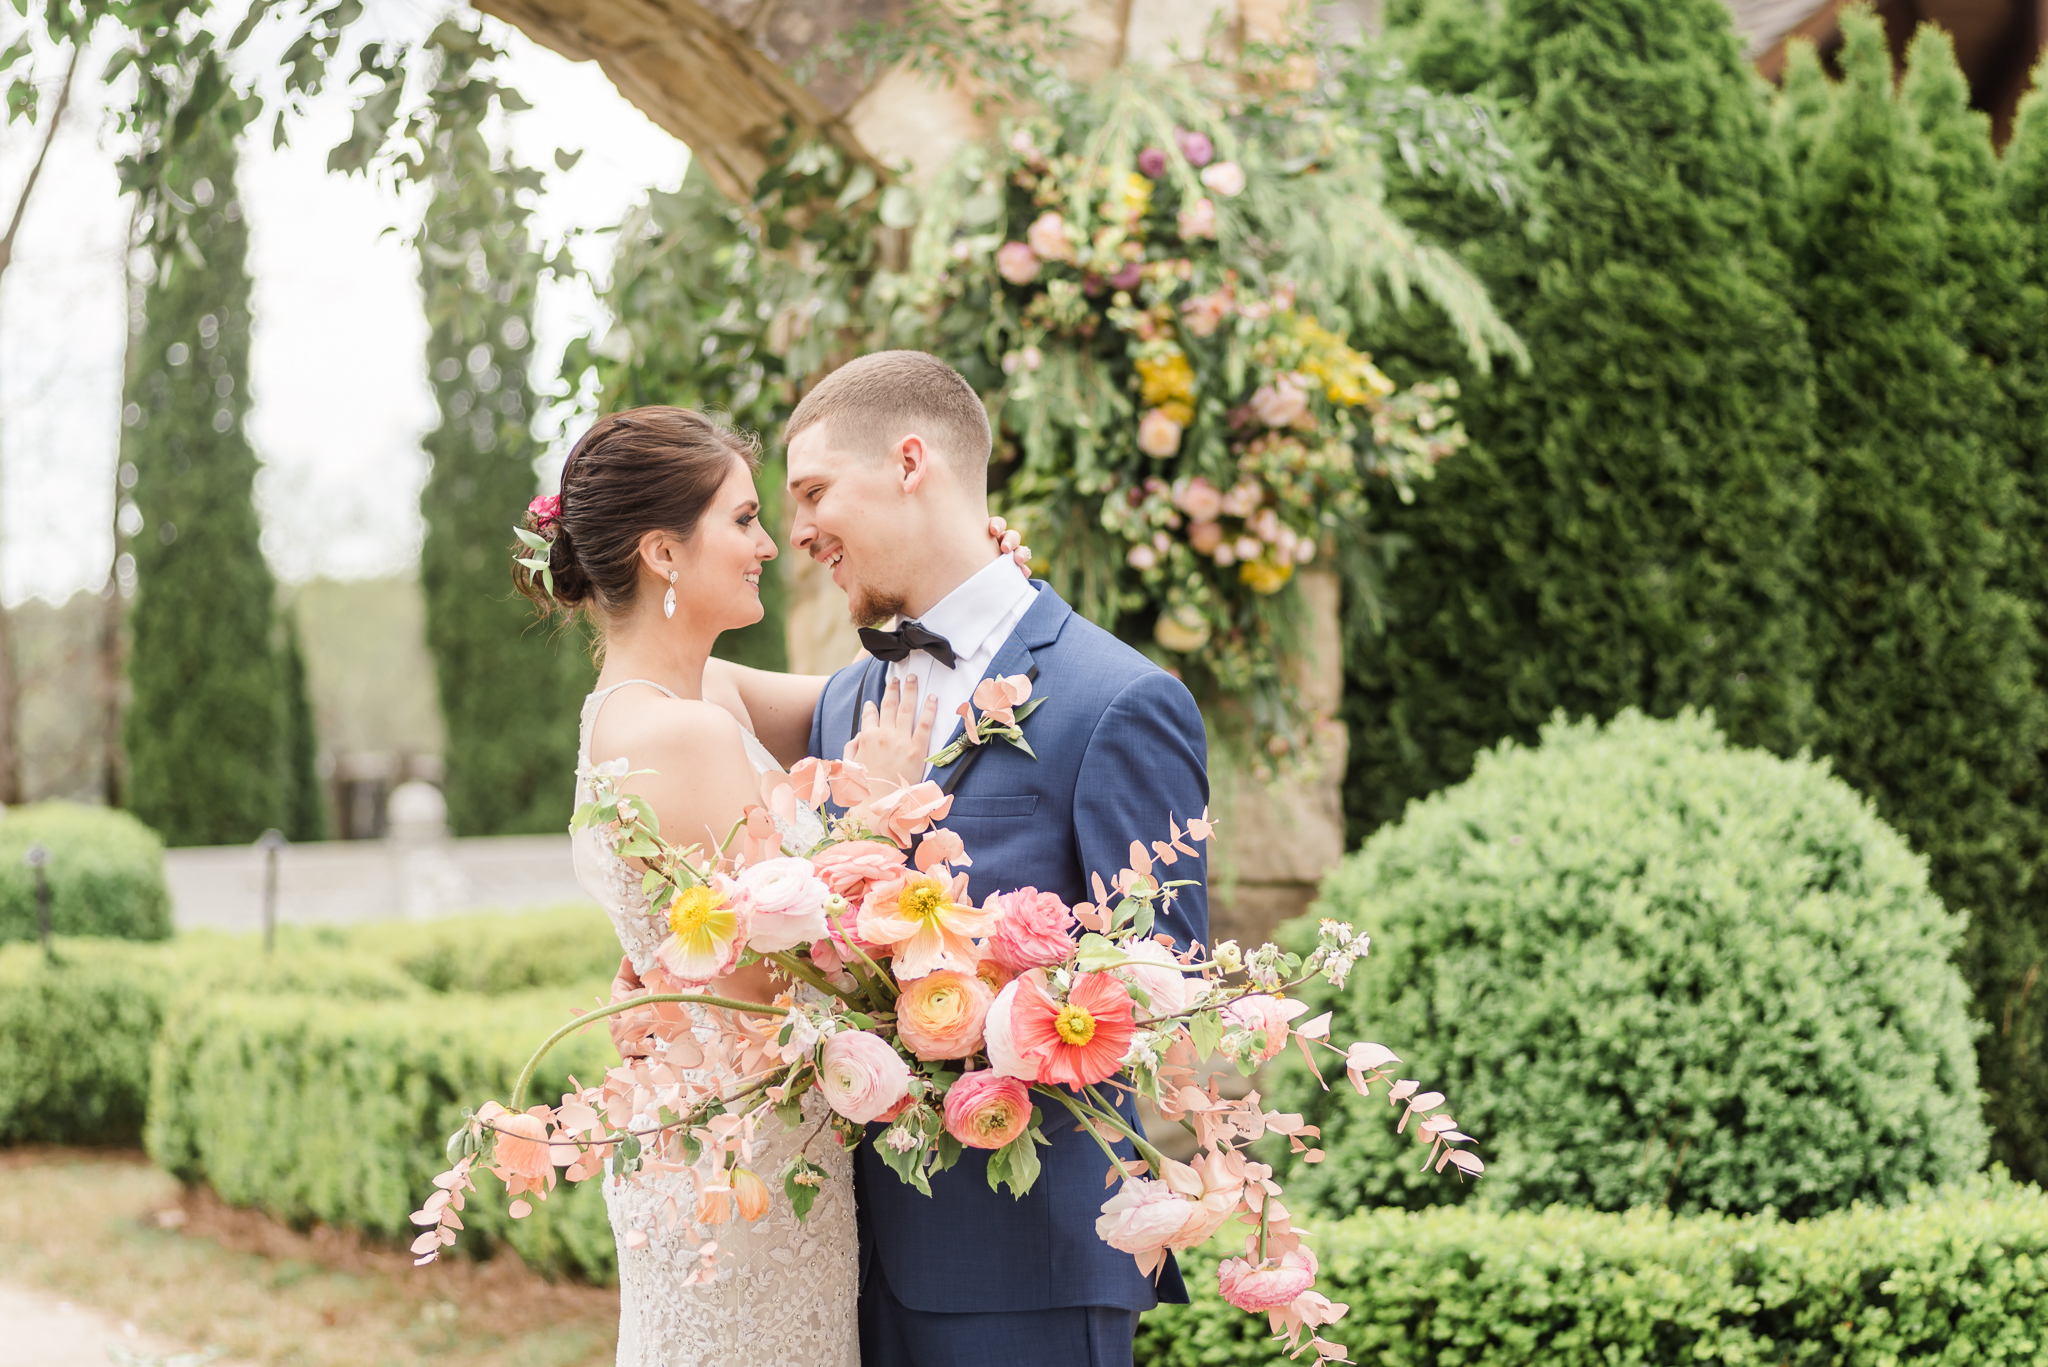 The Best Light and Airy Indianapolis Wedding Photographers-3.jpg